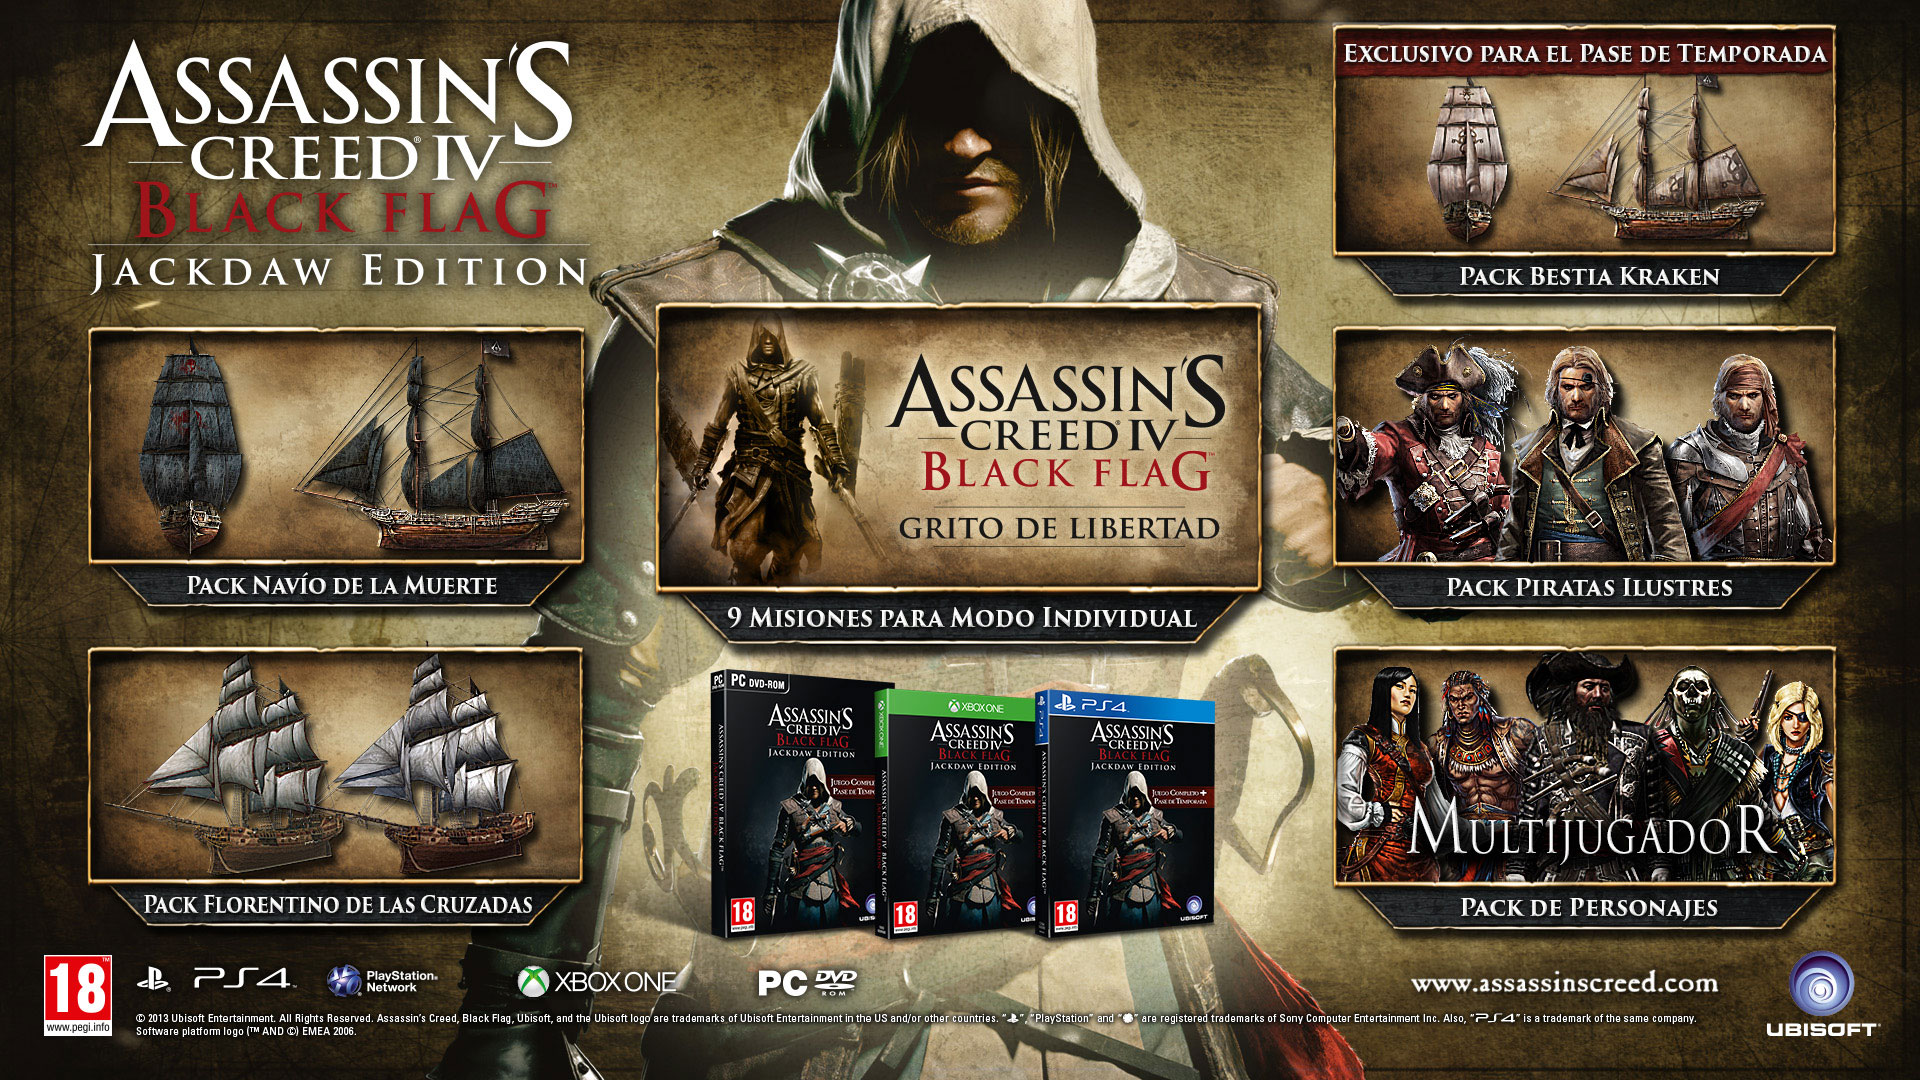 Jackdaw Edition de Assassin's Creed IV Black Flag